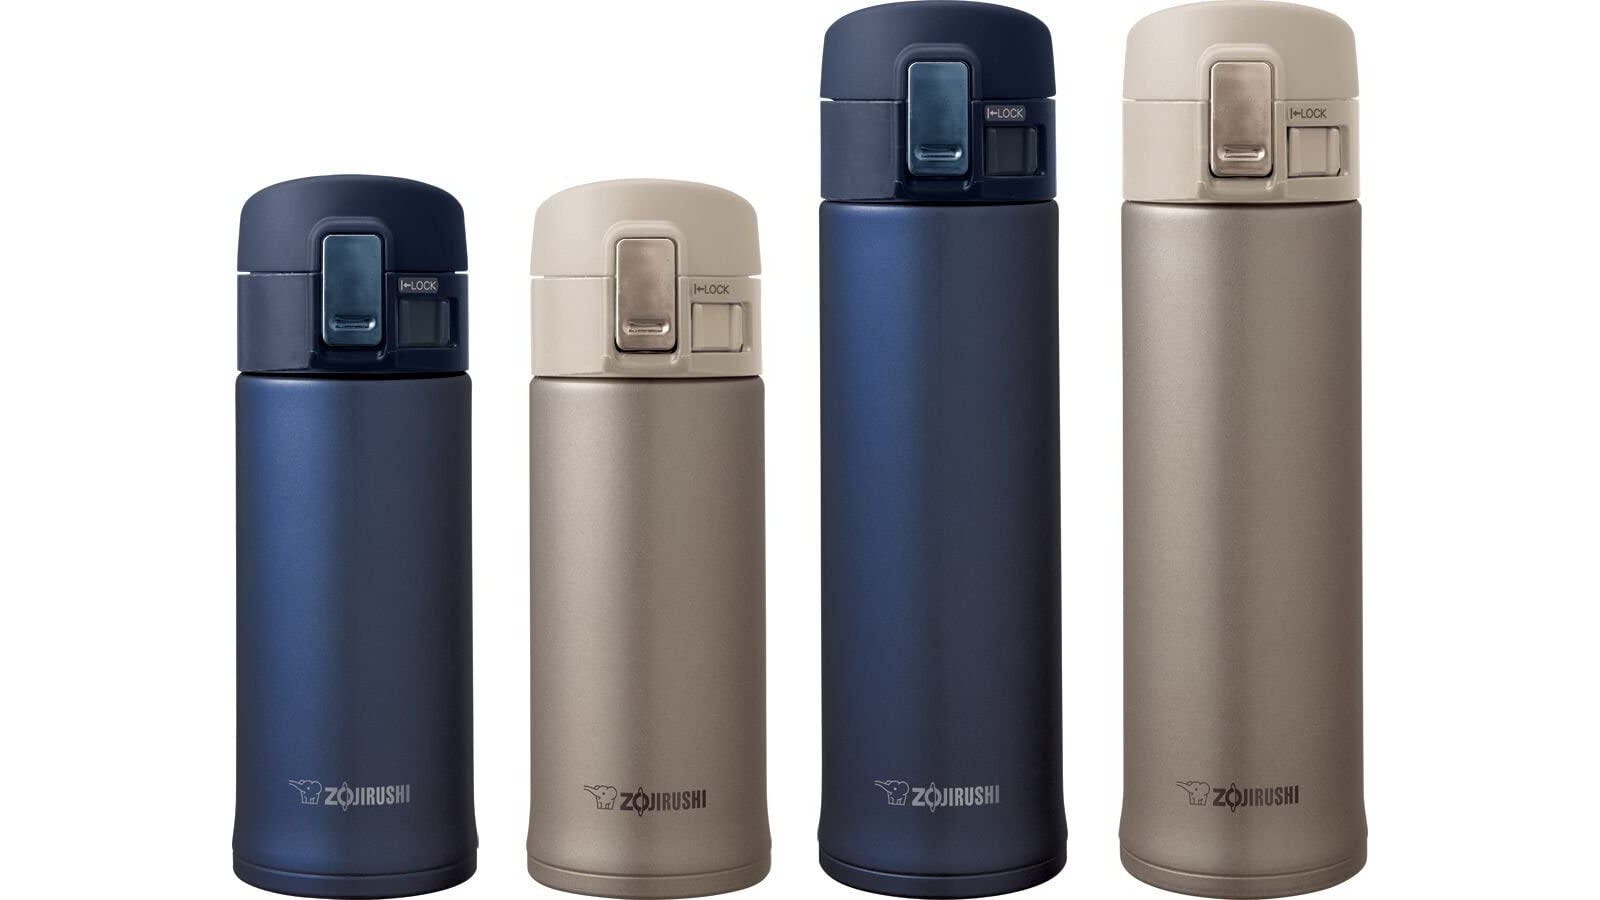 Four different travel mugs with lids in navy blue and beige colors